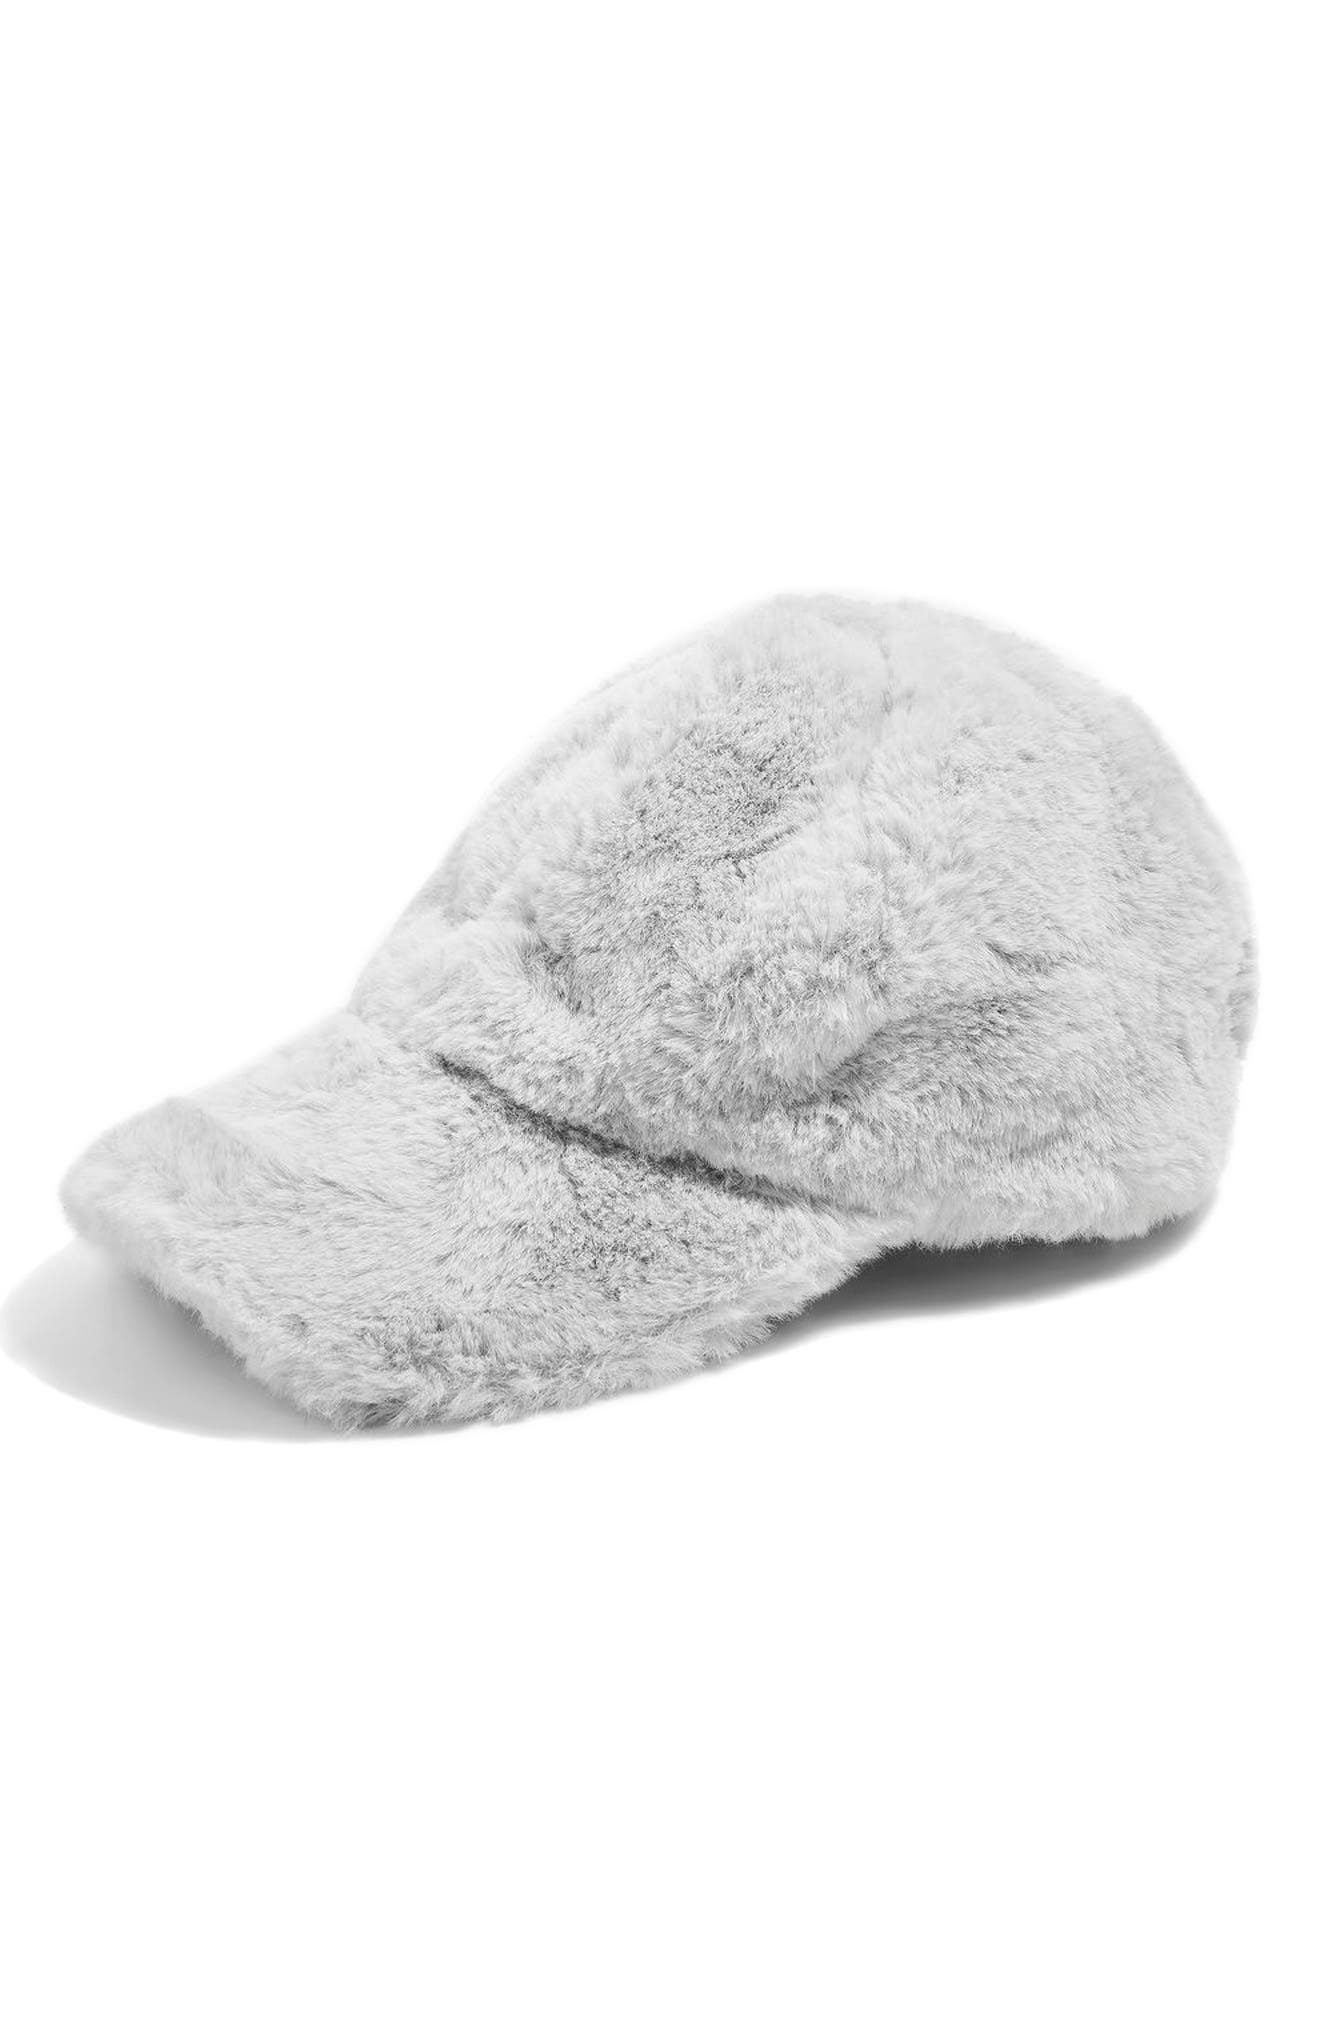 Faux Fur Baseball Cap,                         Main,                         color, 020